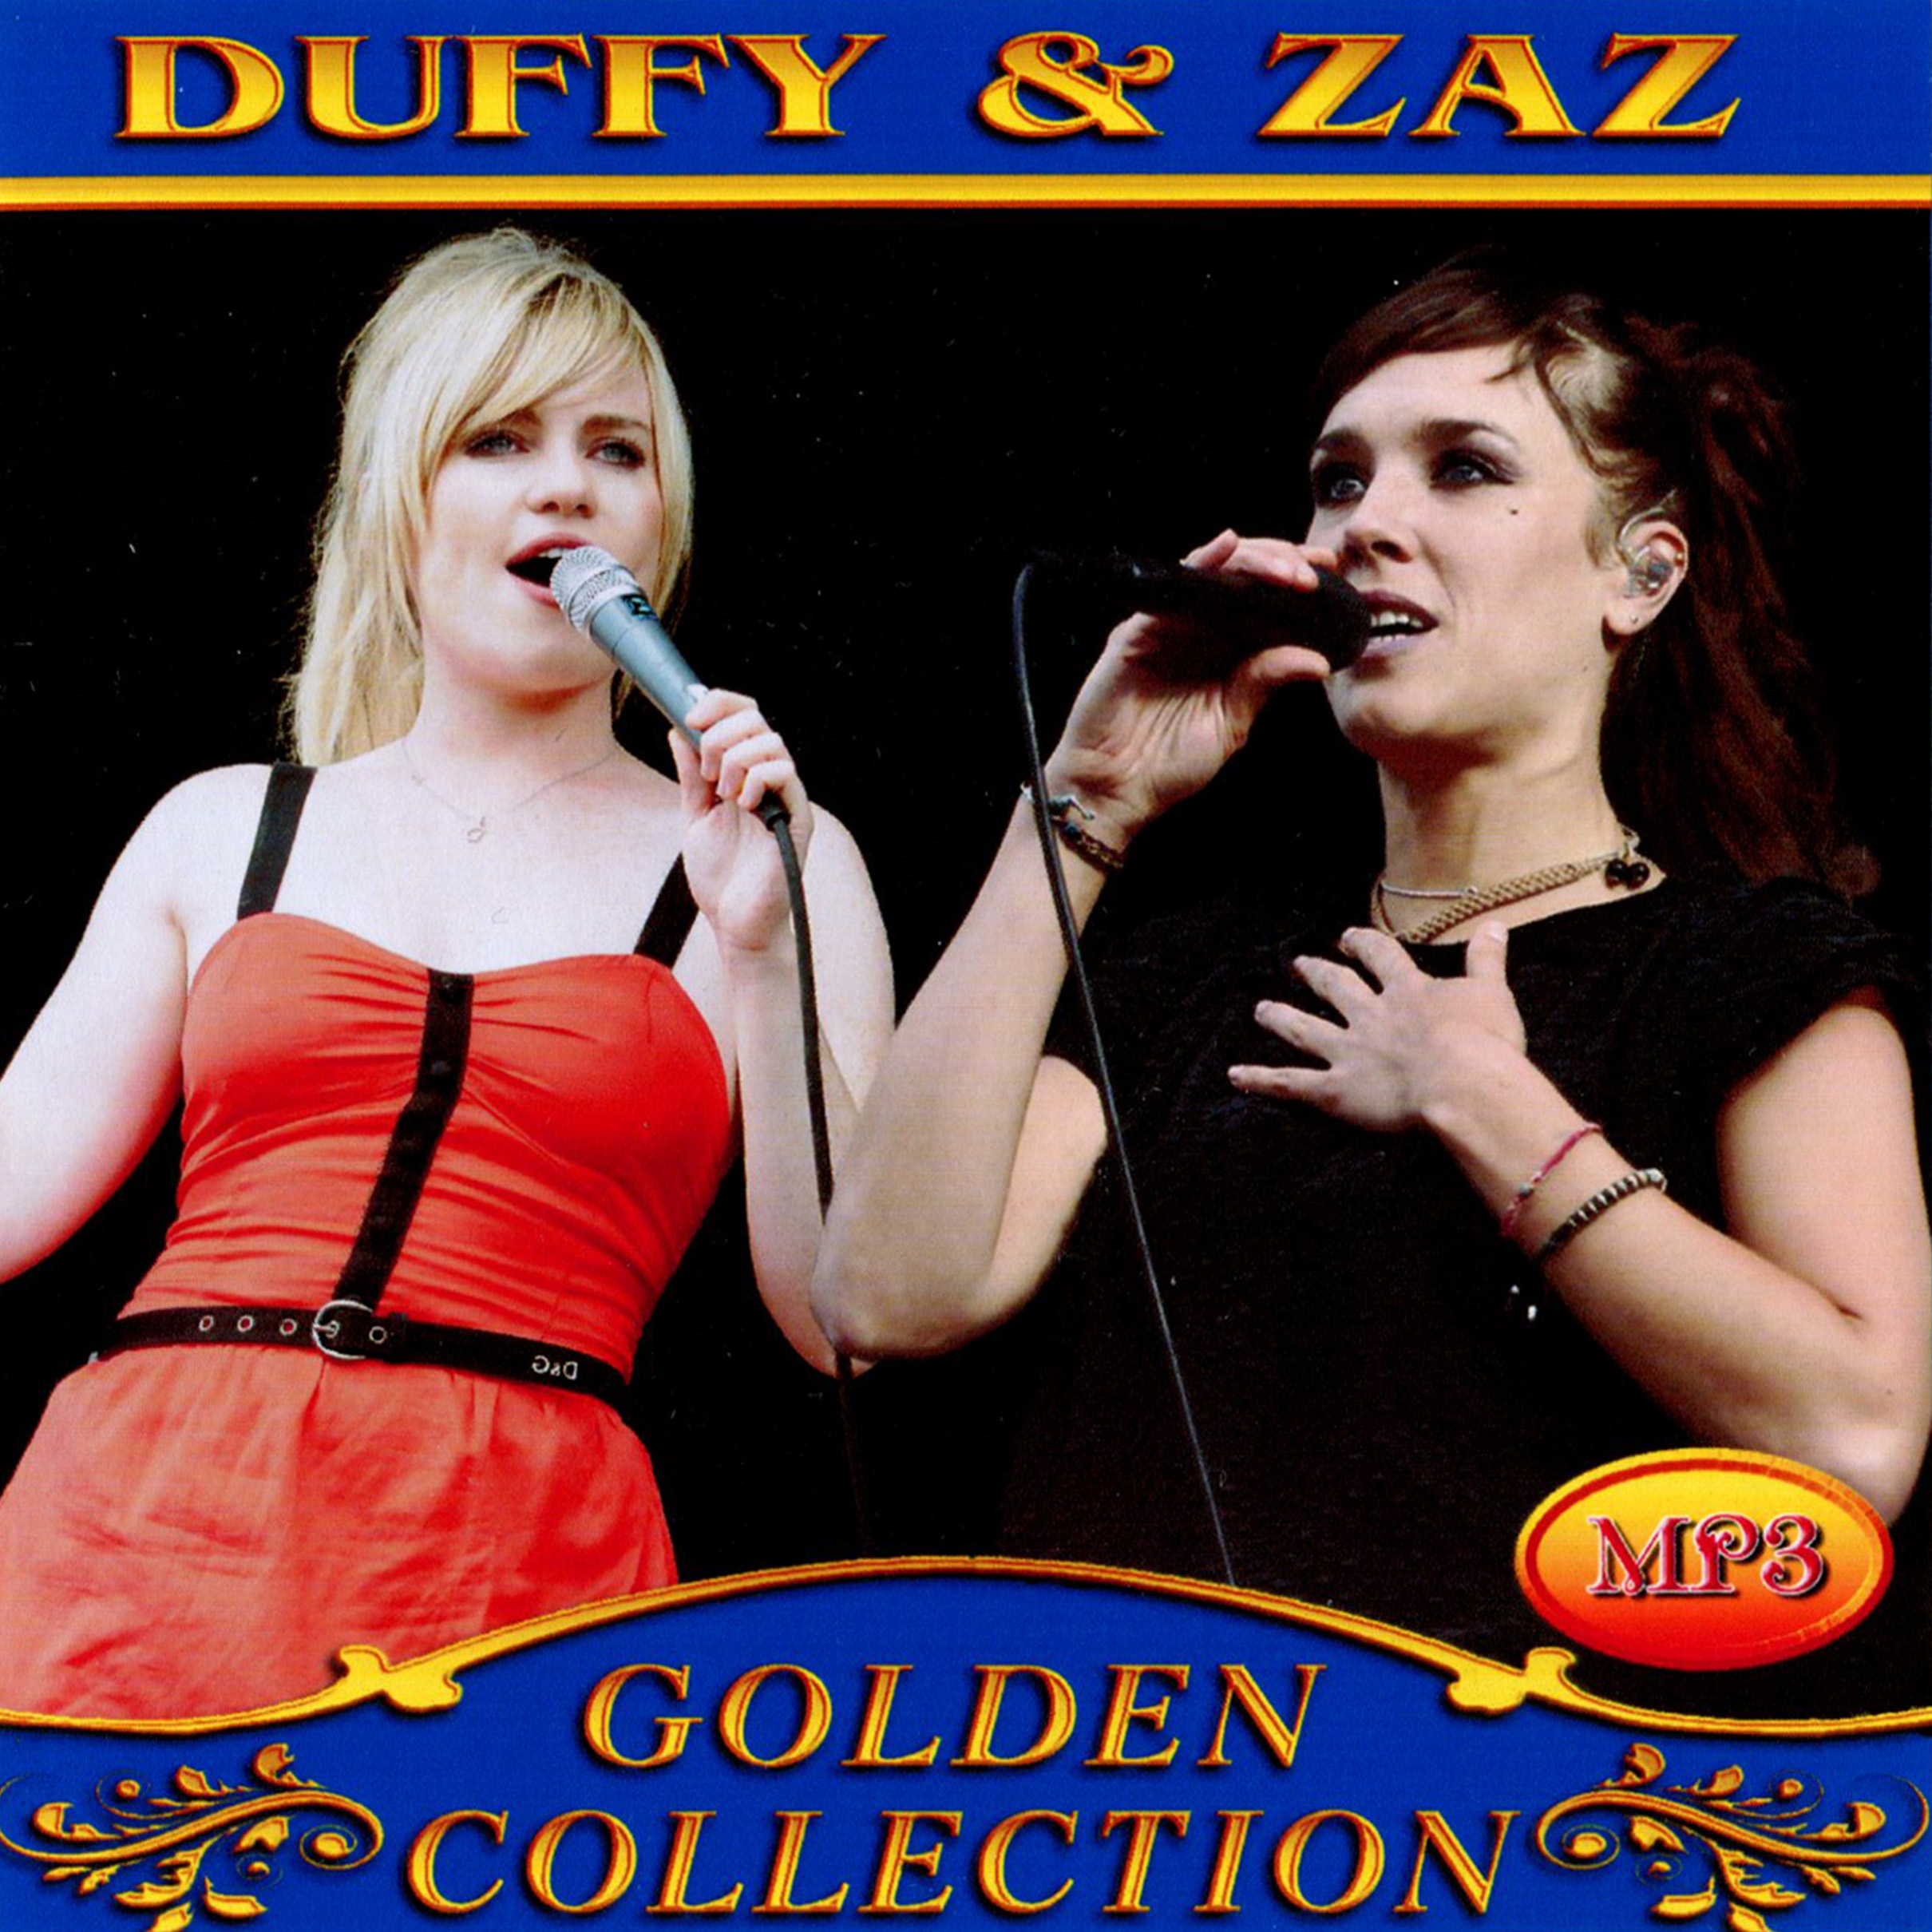 Duffy & Zaz [mp3]